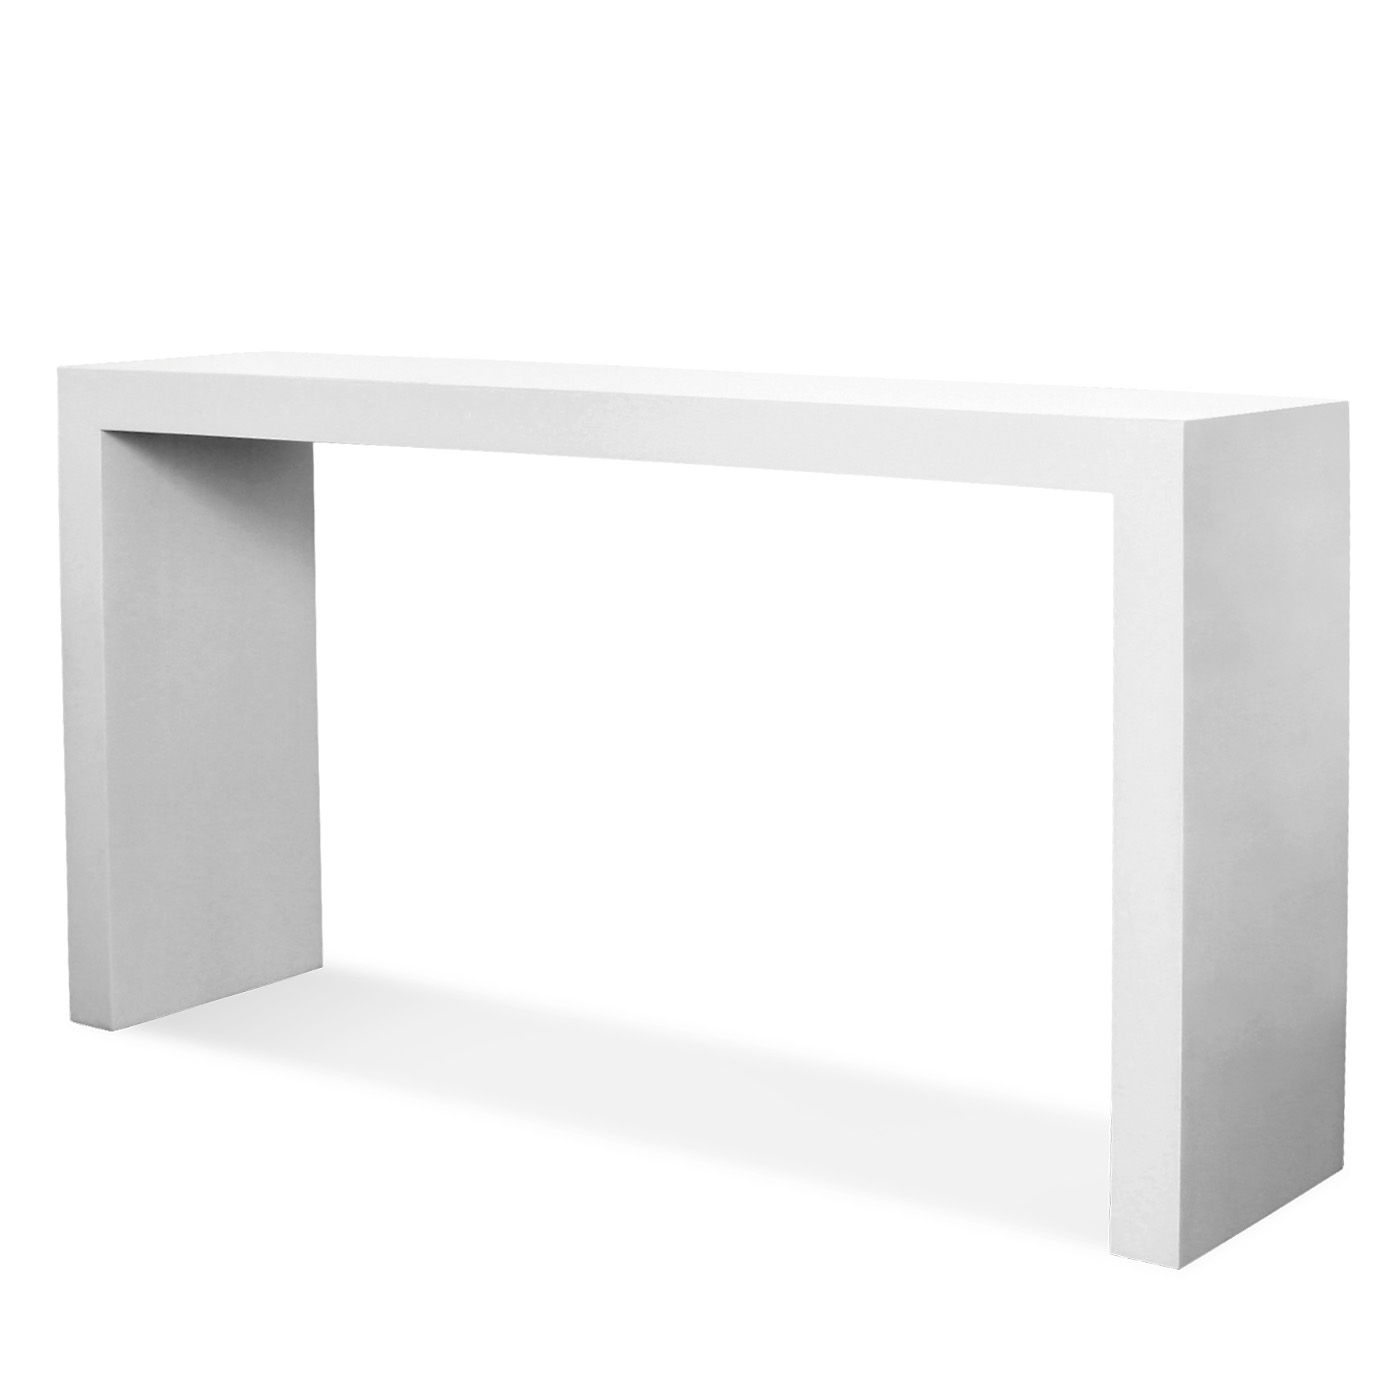 White sofa table Extra Long White Lacquer Console Table Foter White Lacquer Console Table Ideas On Foter